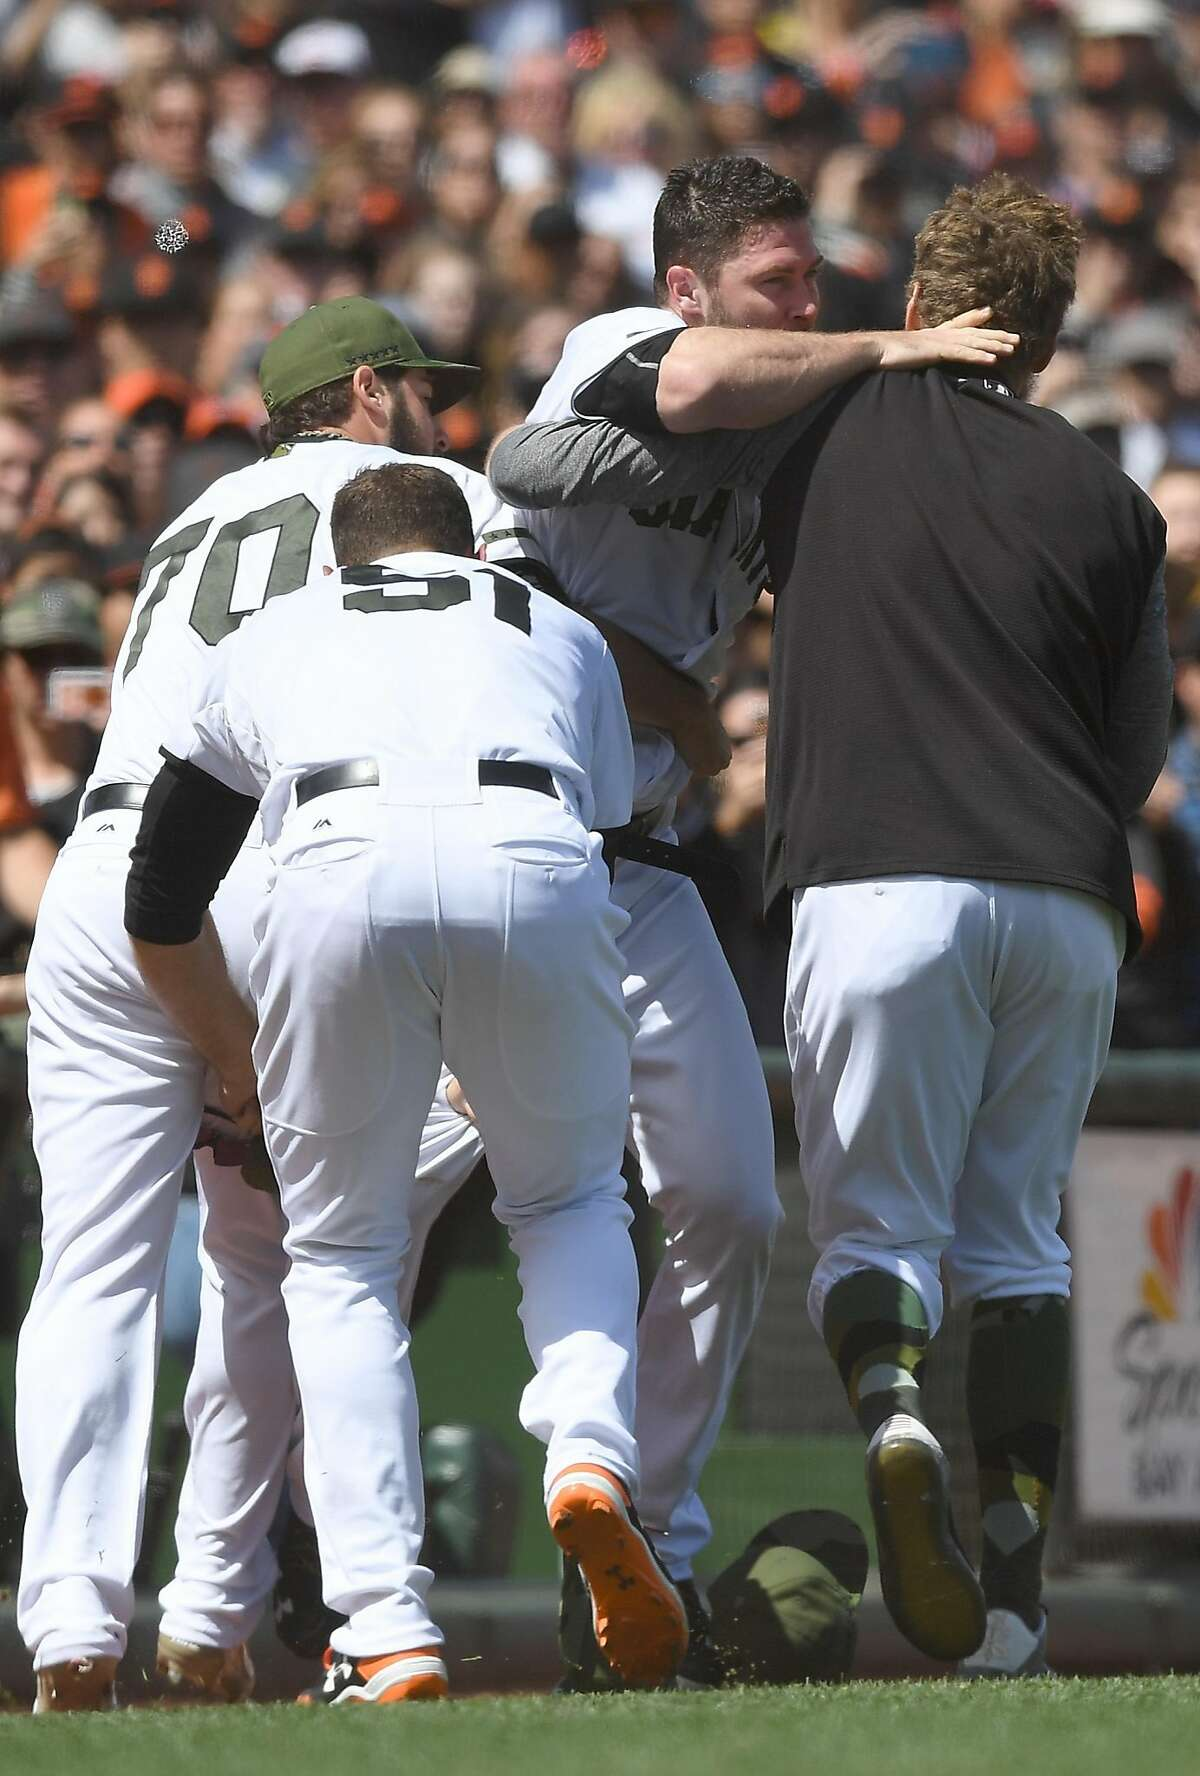 SAN FRANCISCO, CA - MAY 29: Hunter Strickland #60 of the San Francisco Giants gets carried off the field by three teammates (L-R) George Kontos #70, Mac Williamson #51 and Hunter Pence #8 after Strickland got into a fight with Bryce Harper #34 of the Washington Nationals after he hit Harper with a pitch in the top of the eighth inning at AT&T Park on May 29, 2017 in San Francisco, California. (Photo by Thearon W. Henderson/Getty Images)